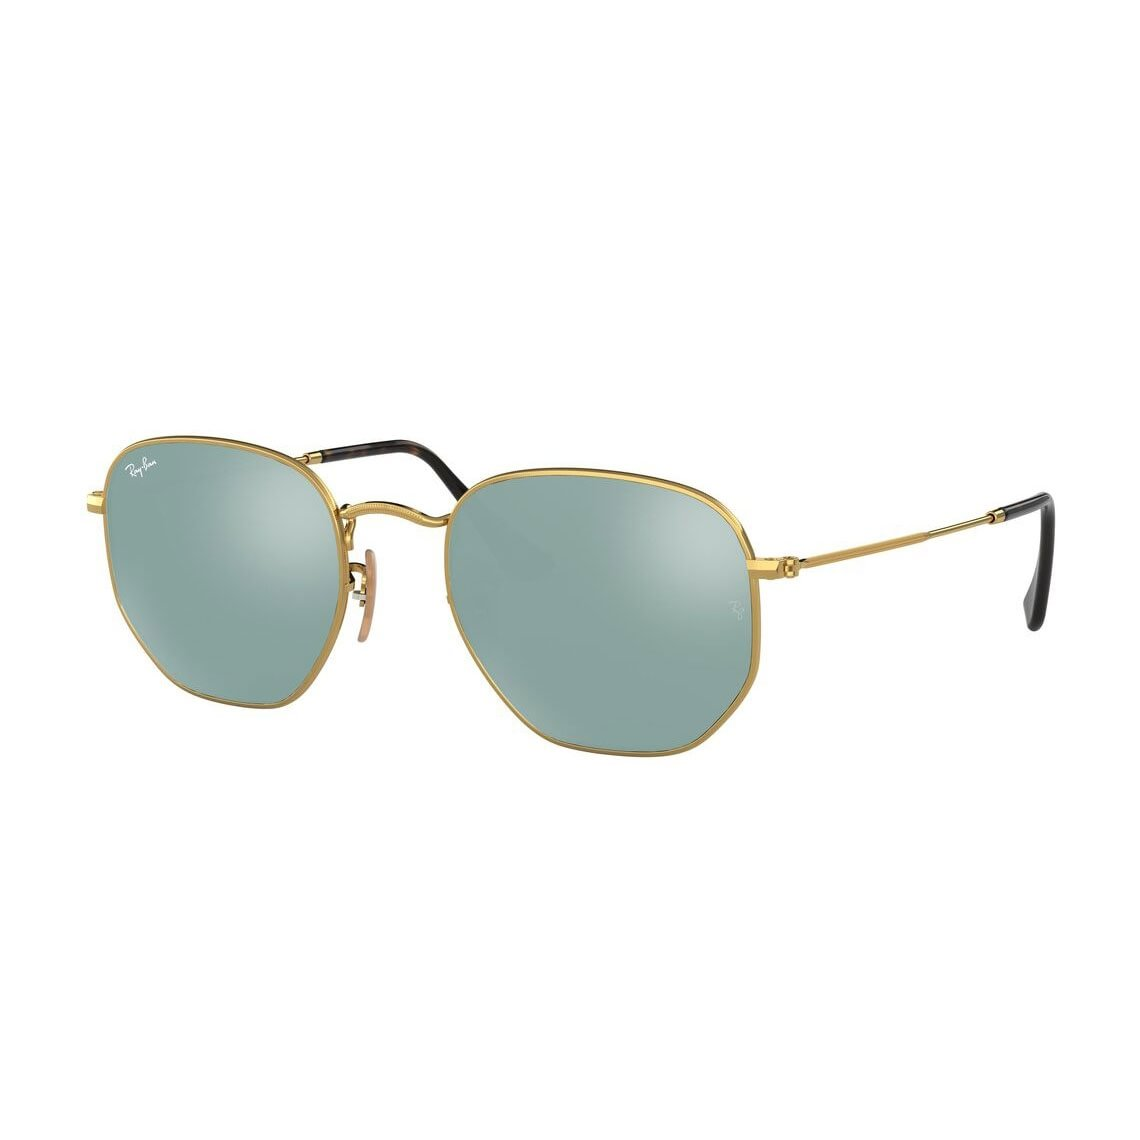 Ray-Ban Hexagonal flat lenses RB3548N 001/30 54